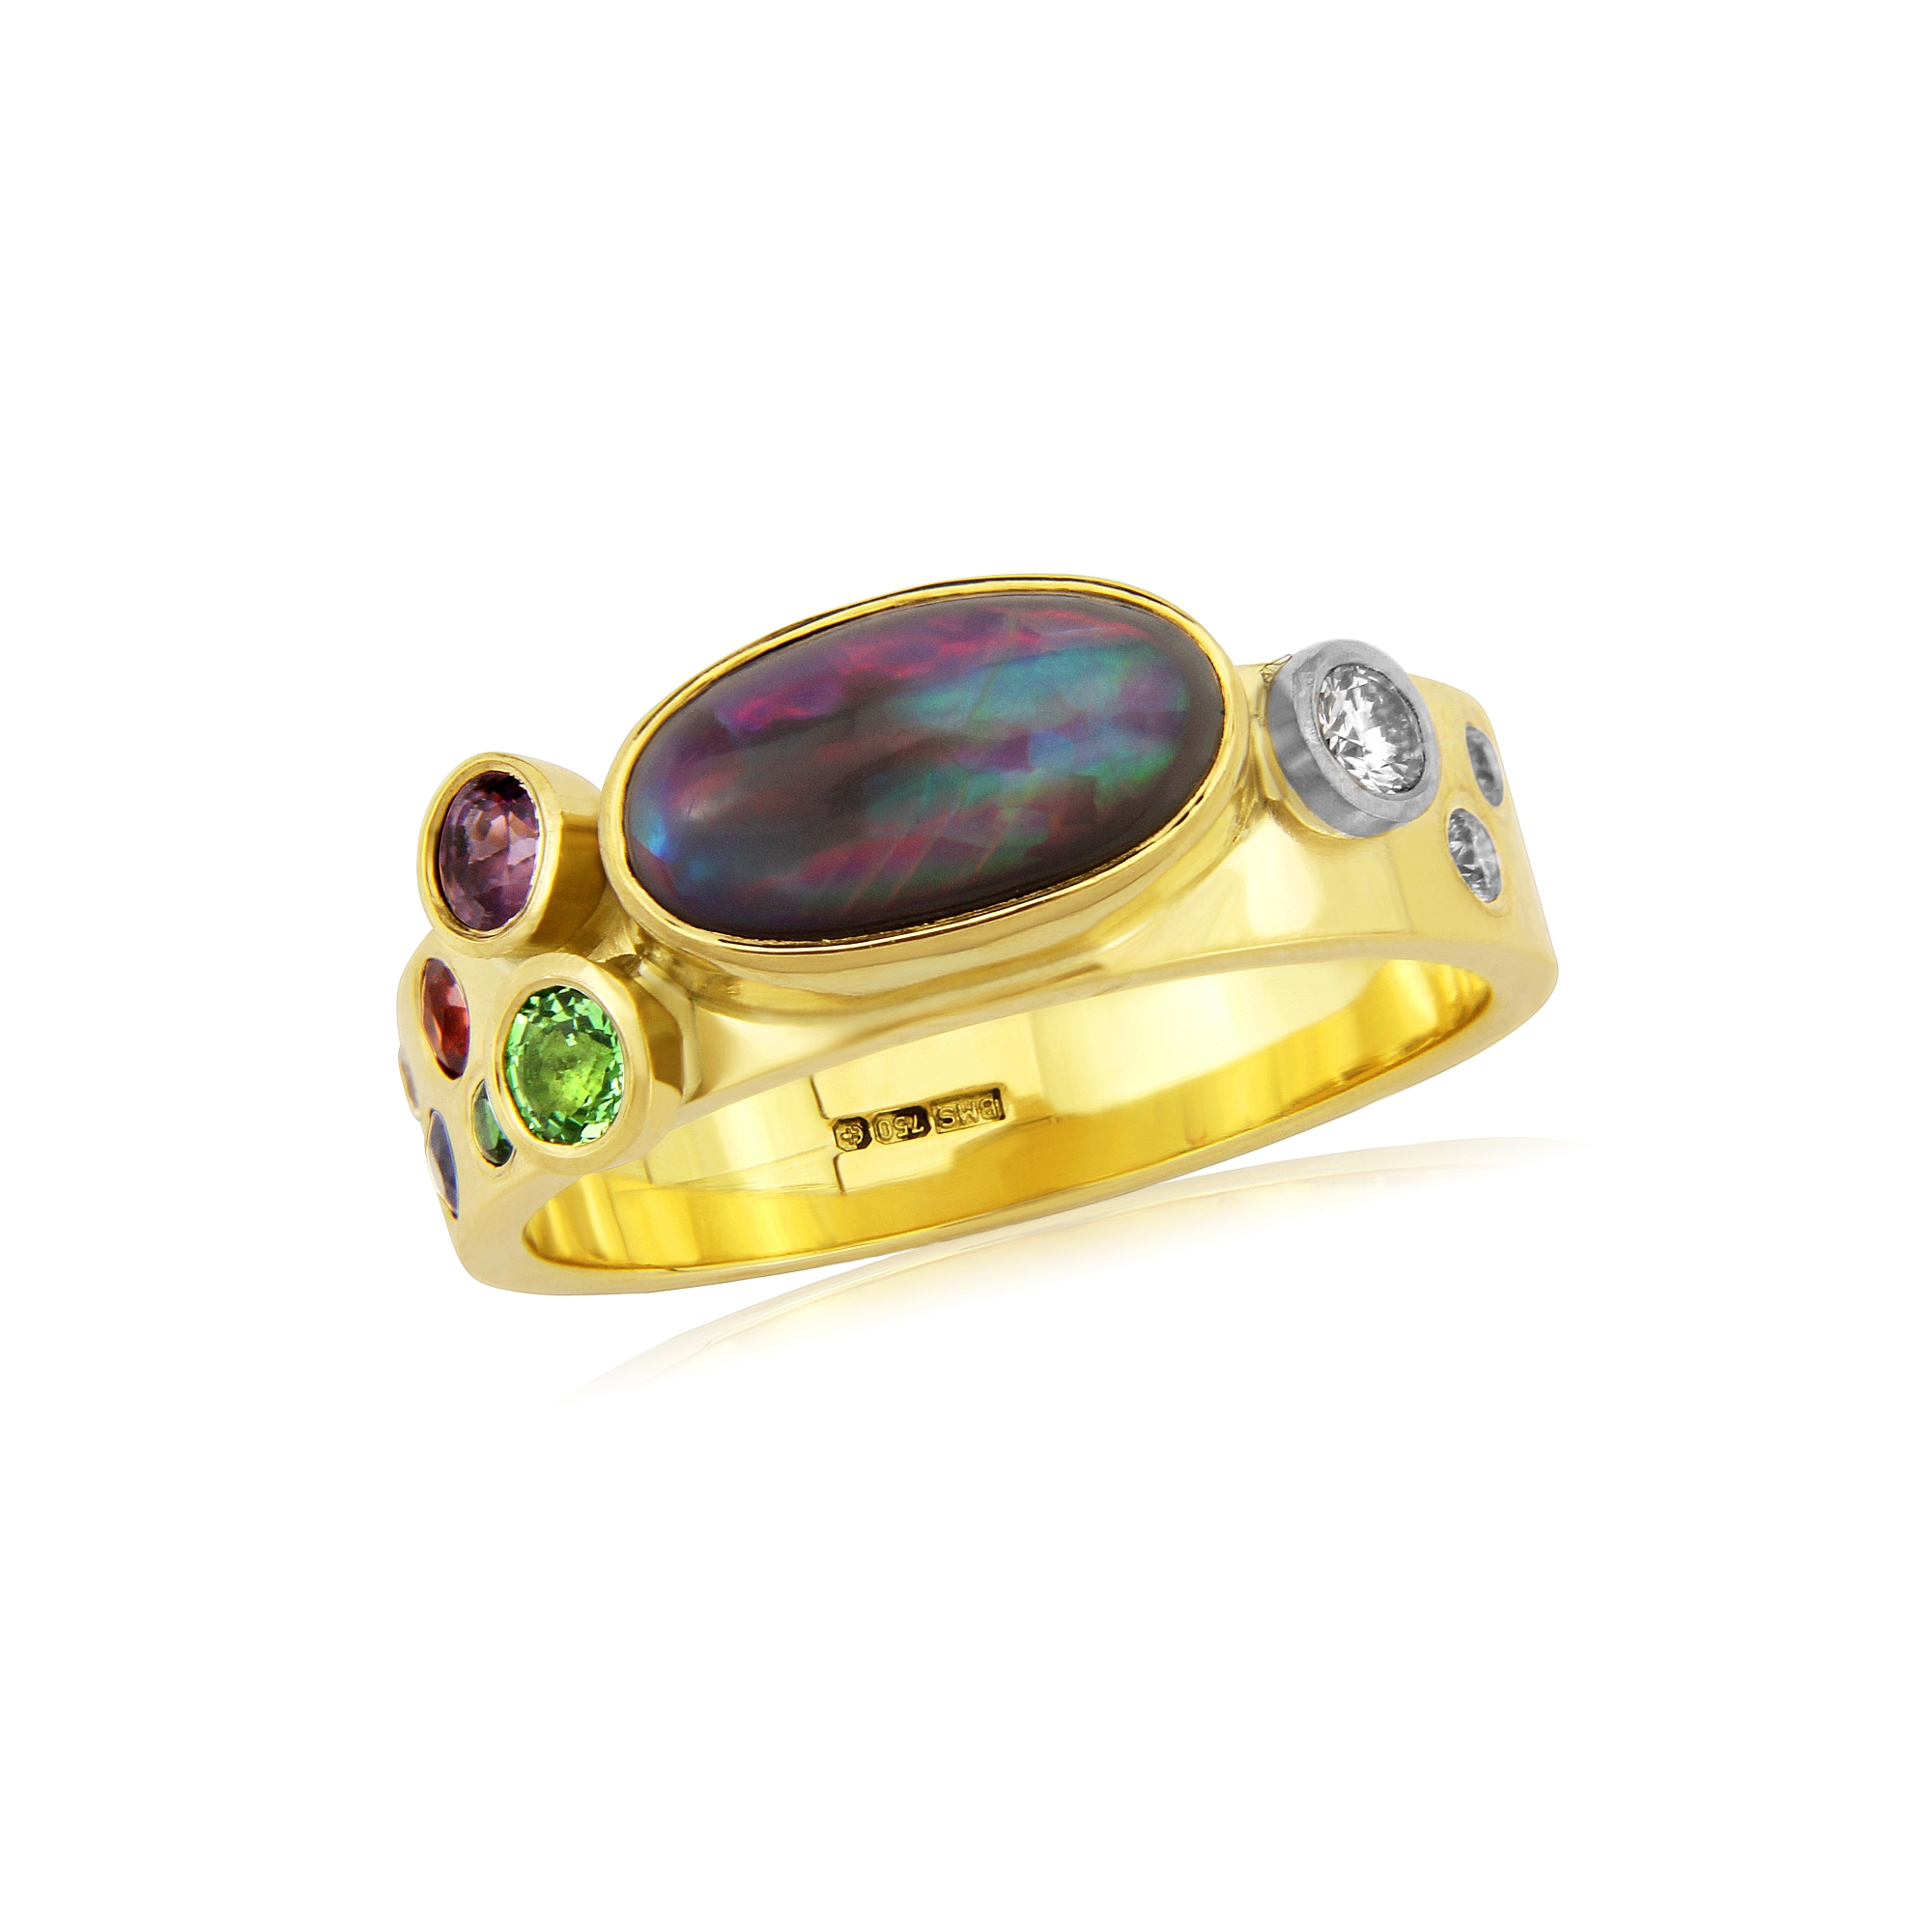 Solid Australian black Opal with Diamonds Sapphires and Tsavorite garnet in 18ct gold in a band style ring simple to wear and can be beside a wedding ring or other .